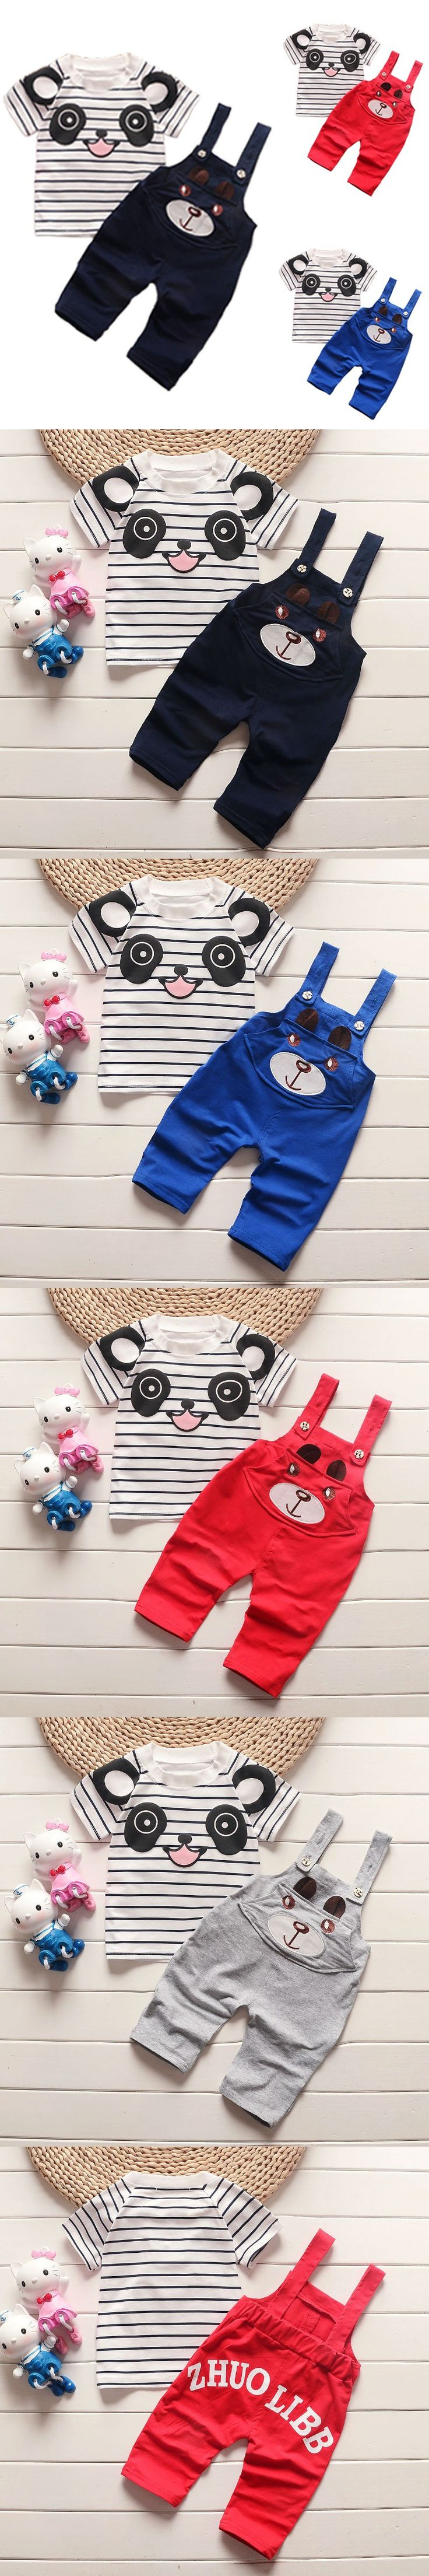 2016 New Summer Baby Clothing Sets Cotton Baby Kleding Cute Cartoon Style T-shirt+Jeans Unisex Gender Casual/Fashion Style